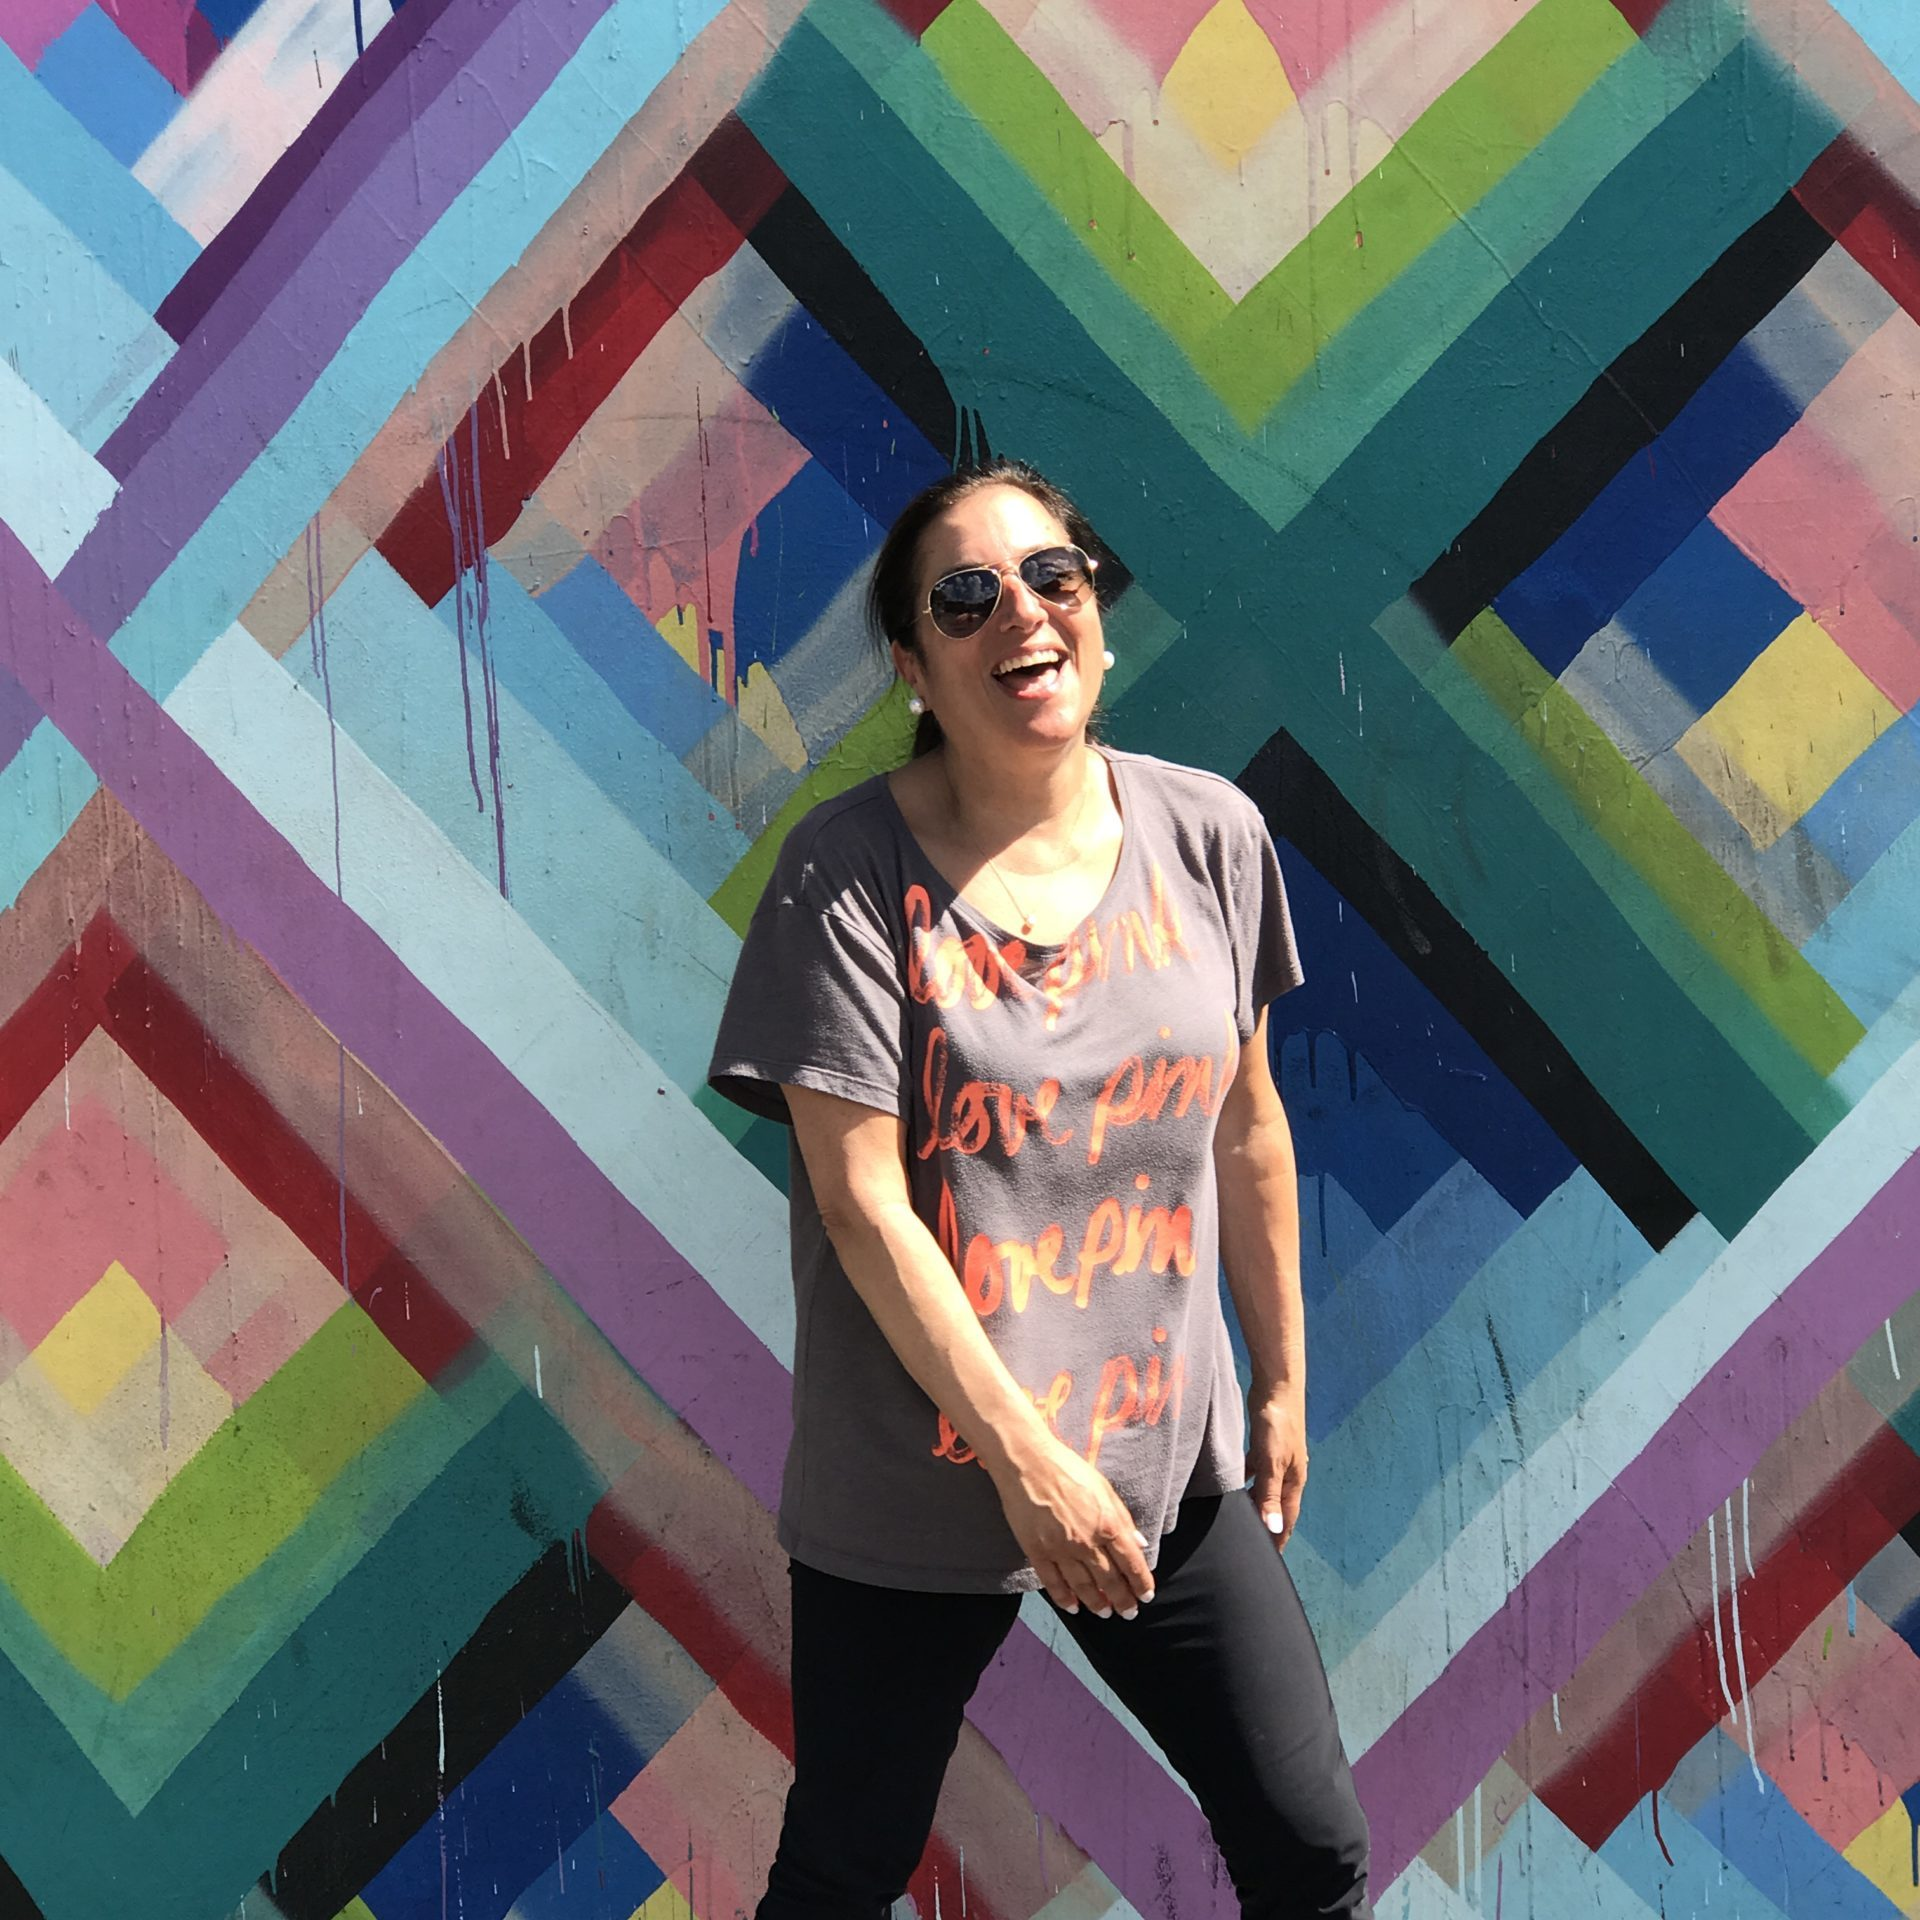 A photo of Shelley who has brown hair pulled back, and wearing sunglasses in front of a brightly colored background.